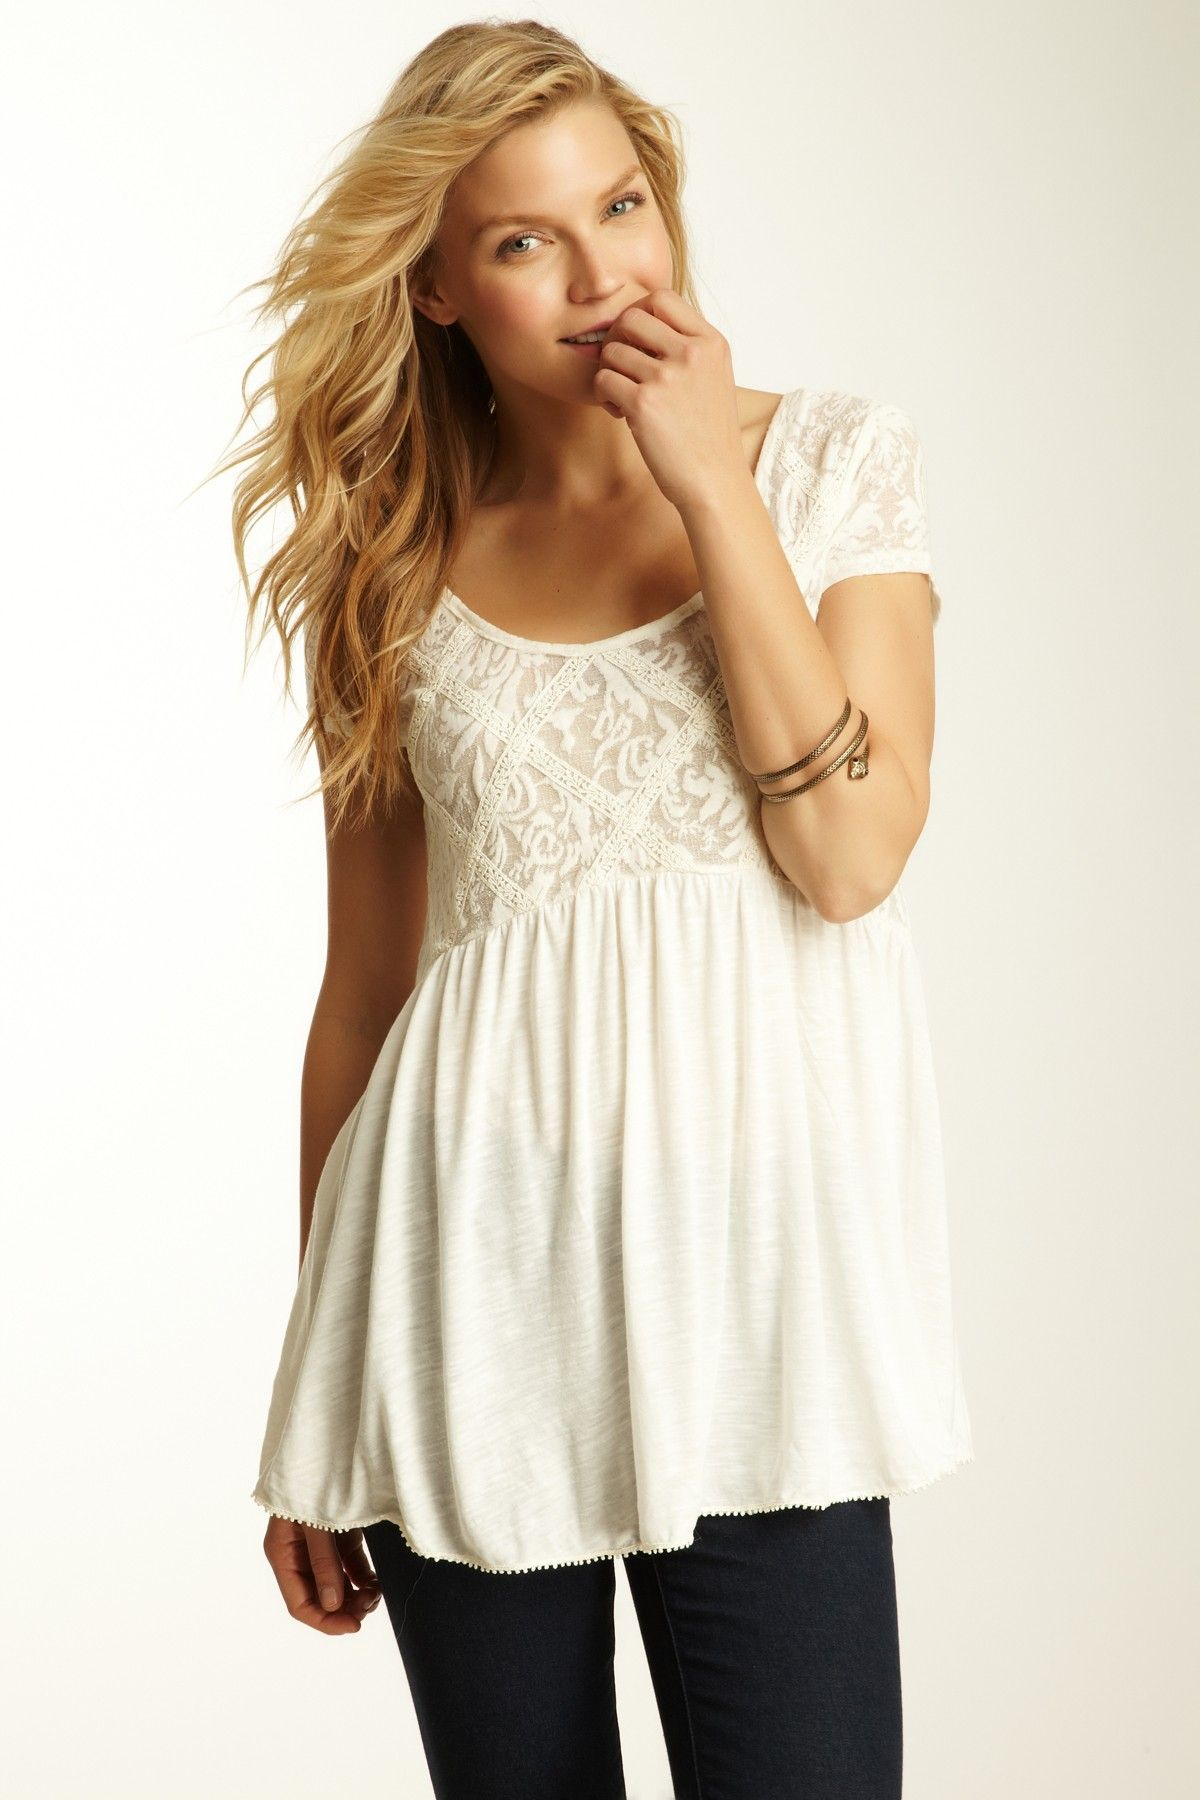 949db655d7e Free People Extreme Babydoll Top | What to wear | Fashion, Tops ...